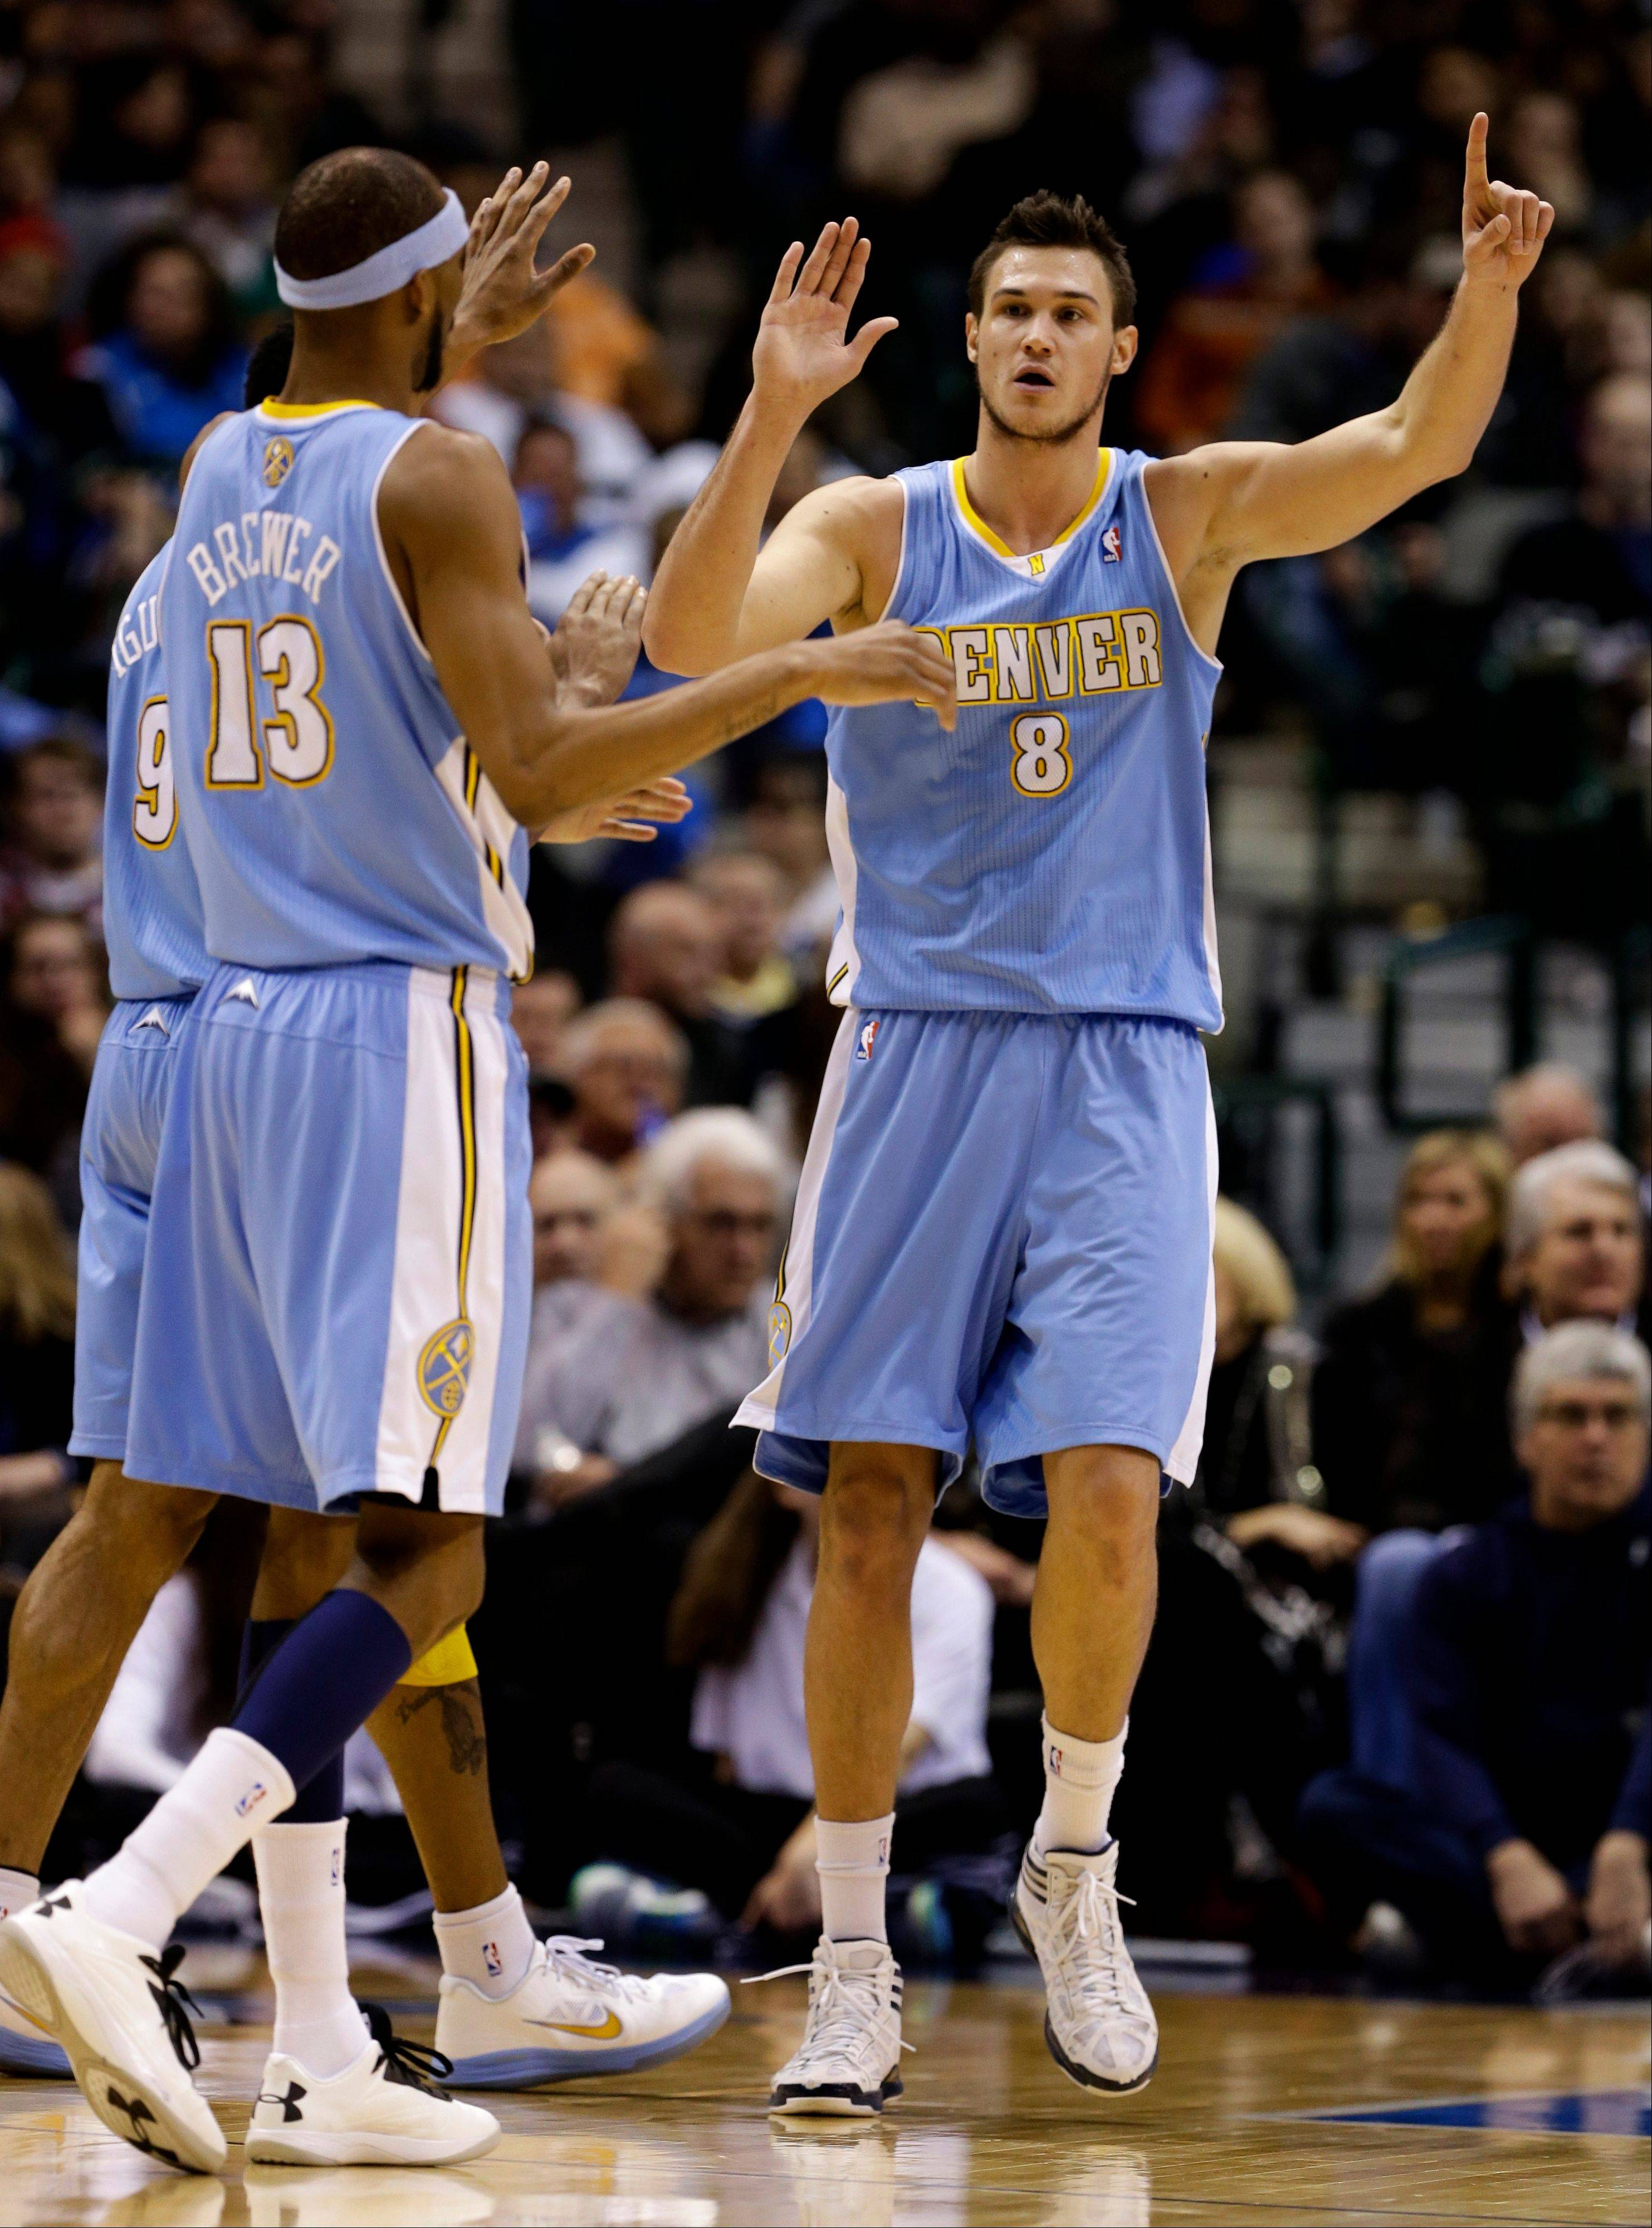 Denver's Corey Brewer (13) and Andre Iguodala celebrate with teammate Danilo Gallinari after Gallinari scored in the second half Friday against the Dallas Mavericks in Dallas. Gallinari had a game-high 39-points in the 106-85 win.